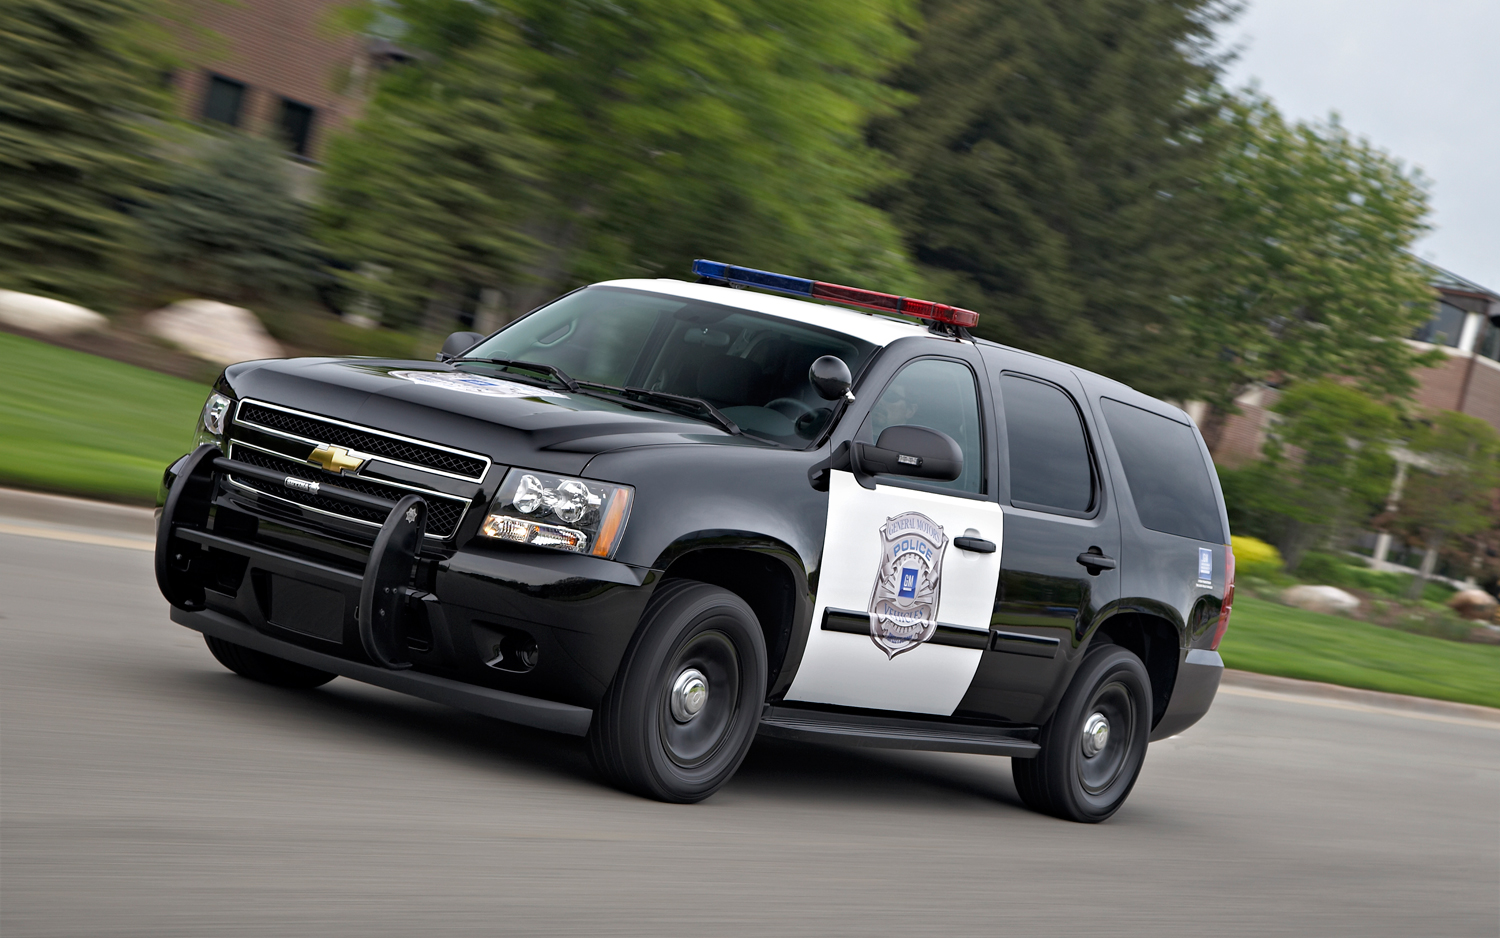 2012 Chevrolet Tahoe PPV 2WD Front Left Side View